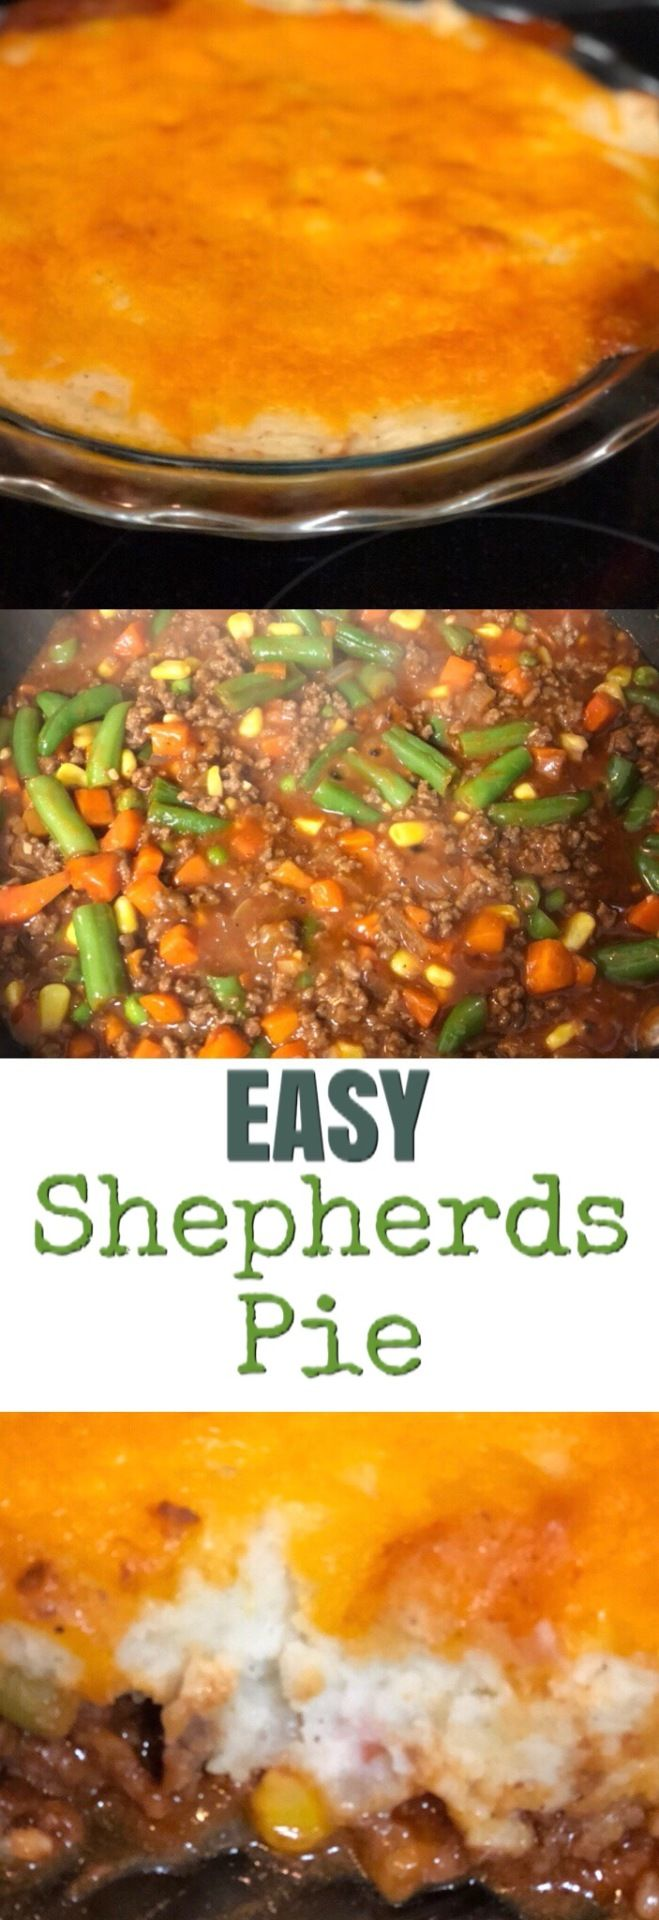 This shepherds pie is a classic. It is definitely a staple meal in my household. You can make this ahead of time and store in your freezer until ready to use, for a delicious dinner option when you are not feeling up to cooking.  Ingredients: 1lb hamburger meat 1 small onion, diced 1 tablespoon minced garlic 2 tablespoons Worcestershire sauce  14oz frozen mixed vegetables  14oz can tomato soup 2 tablespoons A1 sauce 4-5 large potatoes, mashed and seasoned to your liking  Shredded cheese #hamburgermeatrecipes